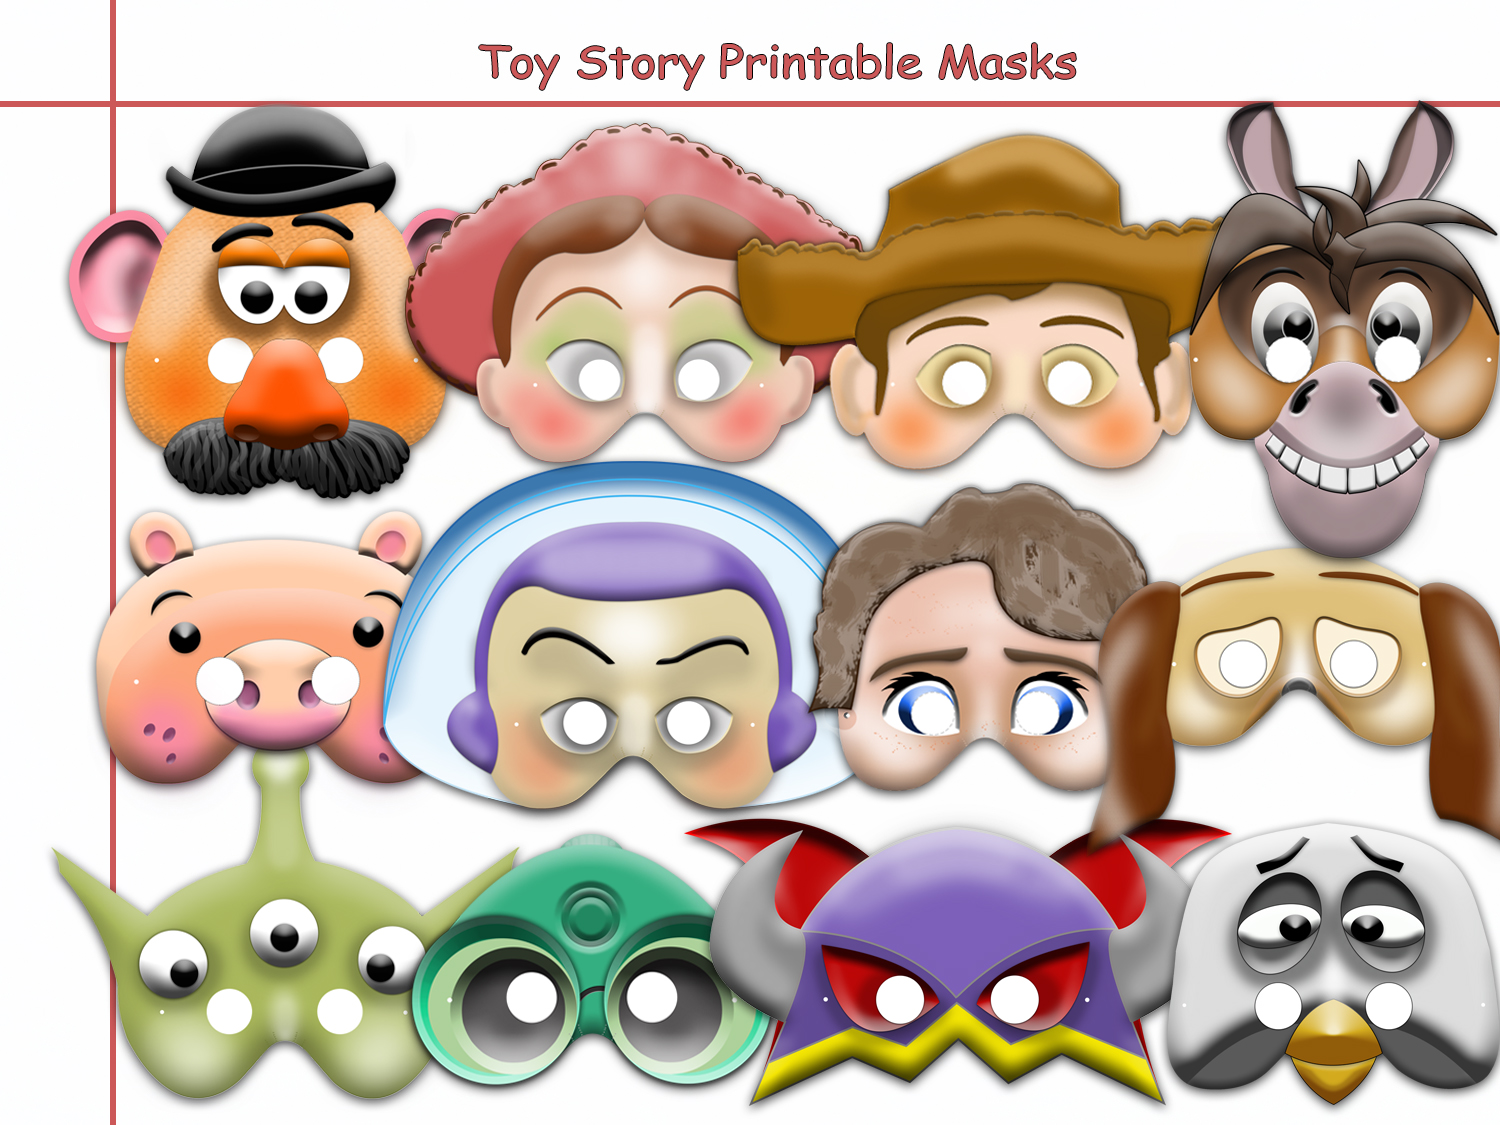 Unique Disney Toy Story Printable Masks